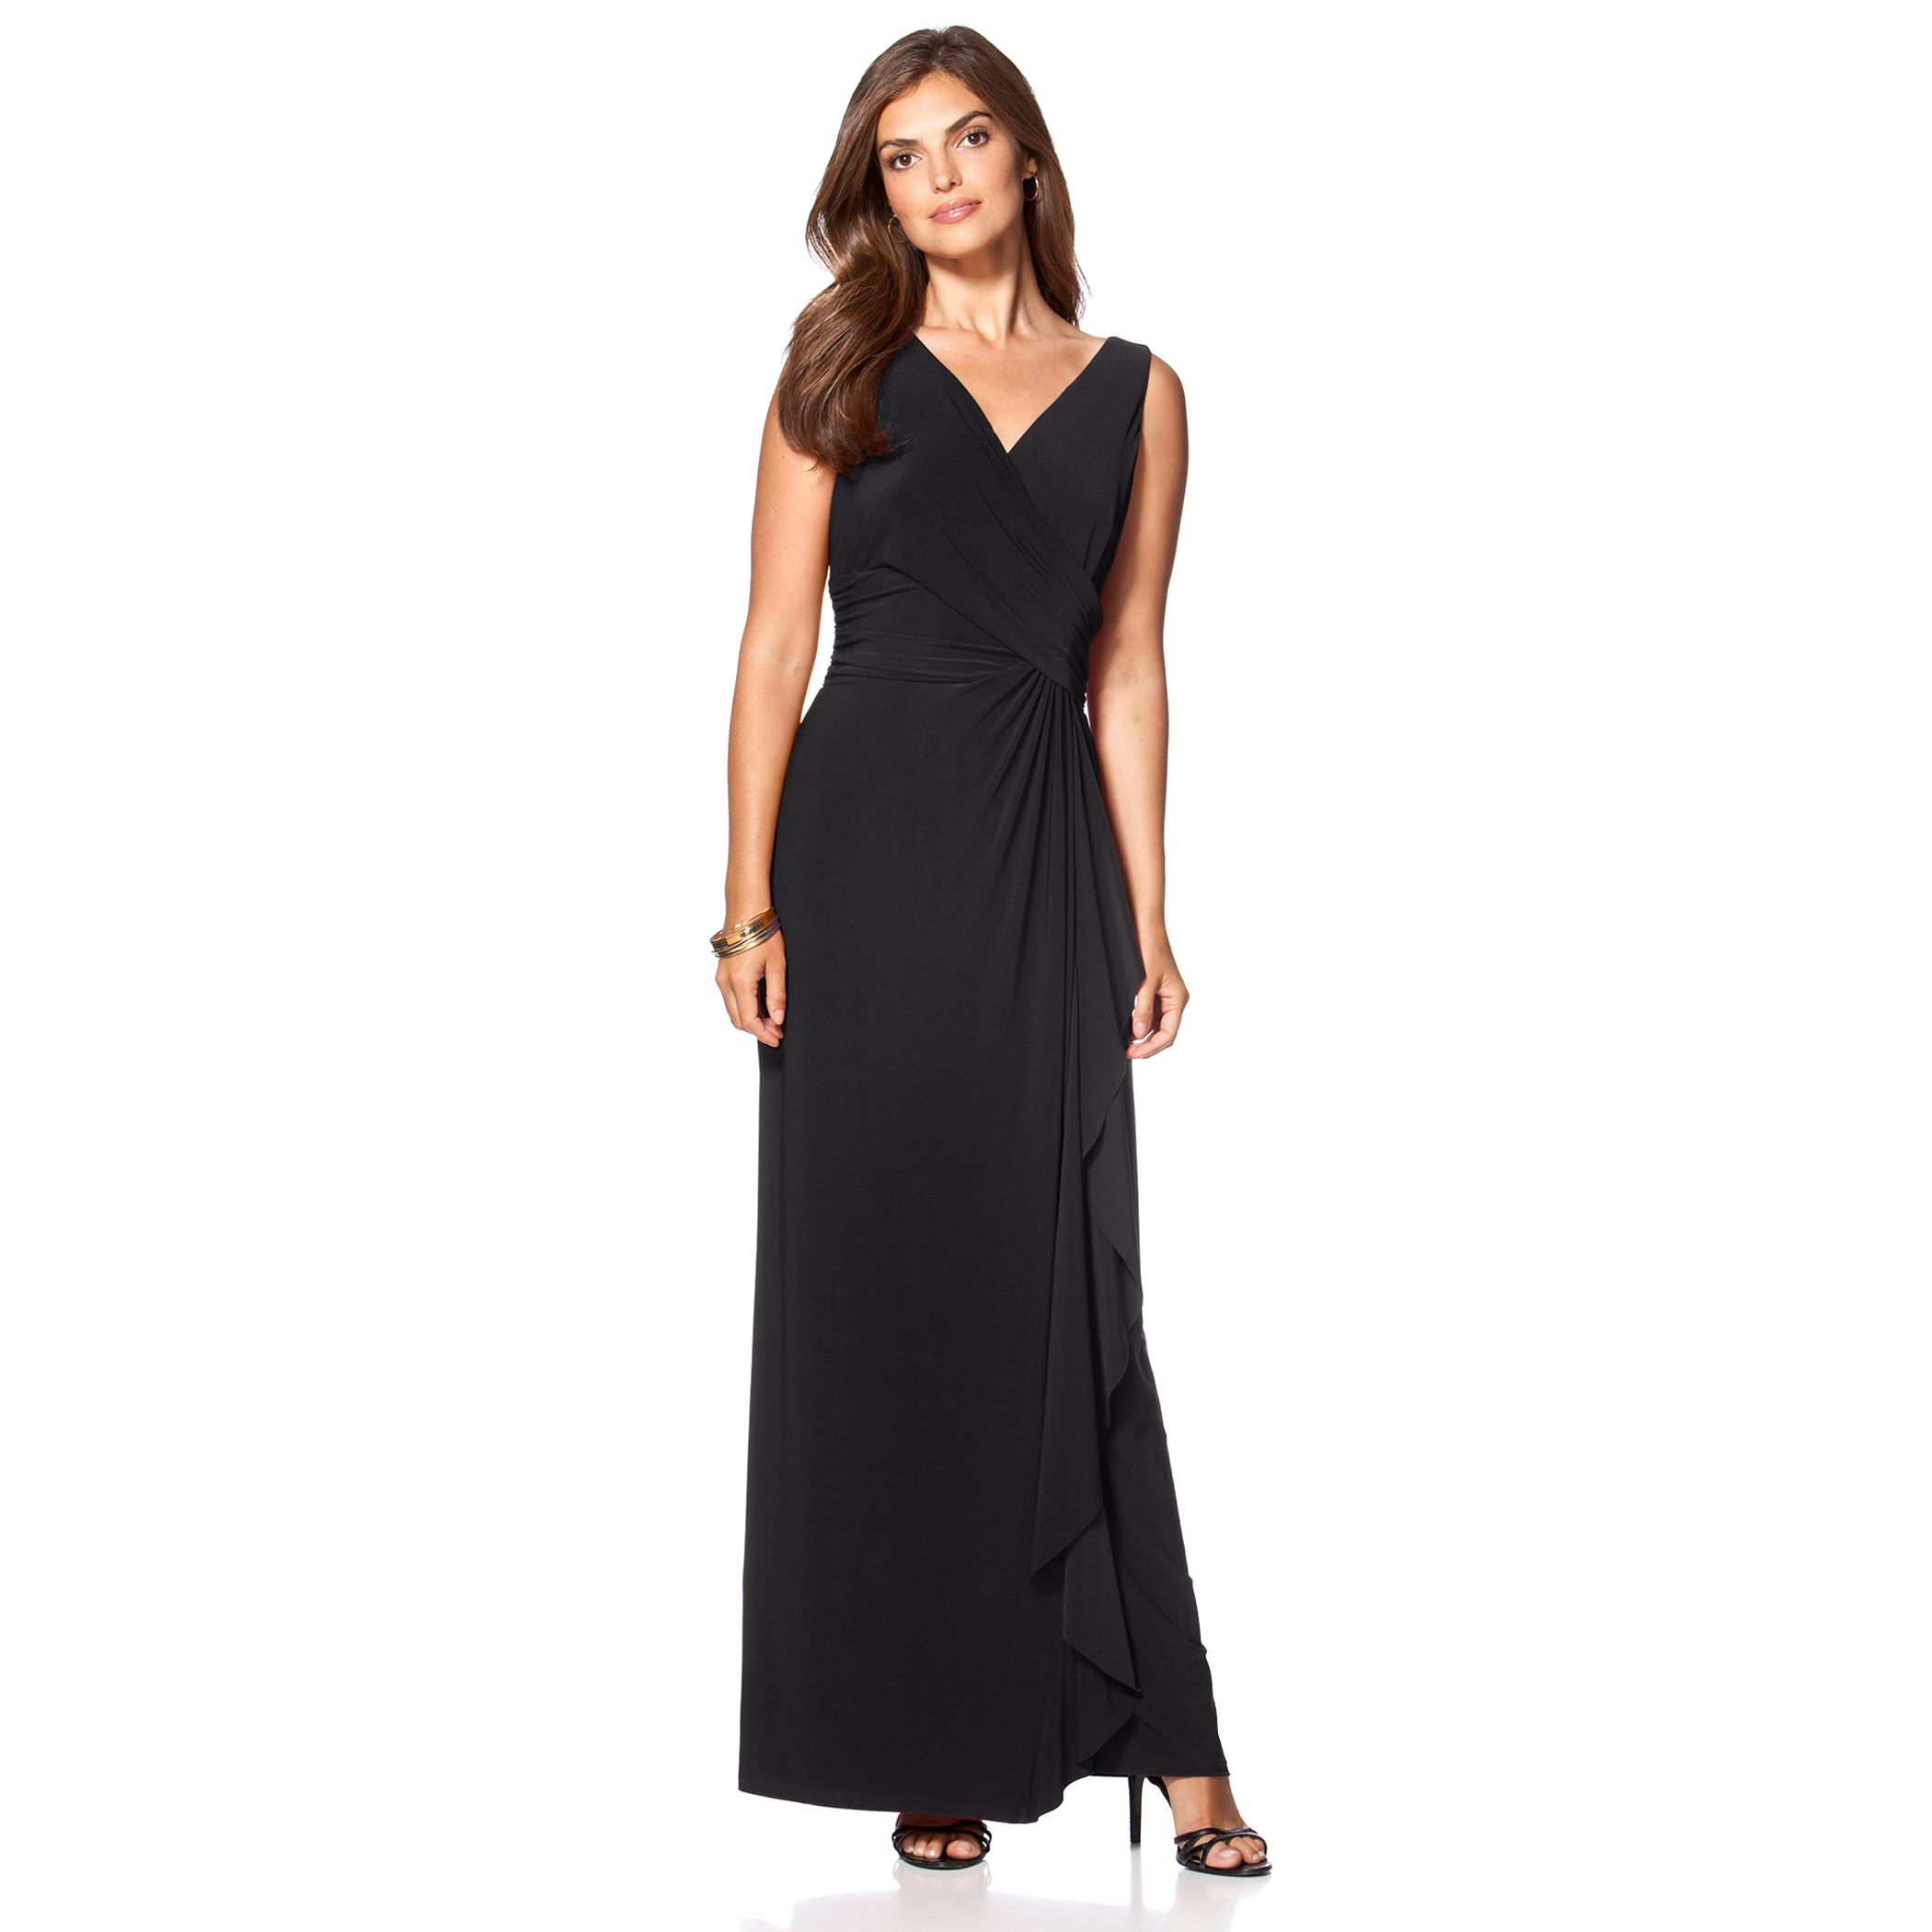 Funeral Dresses Gallery